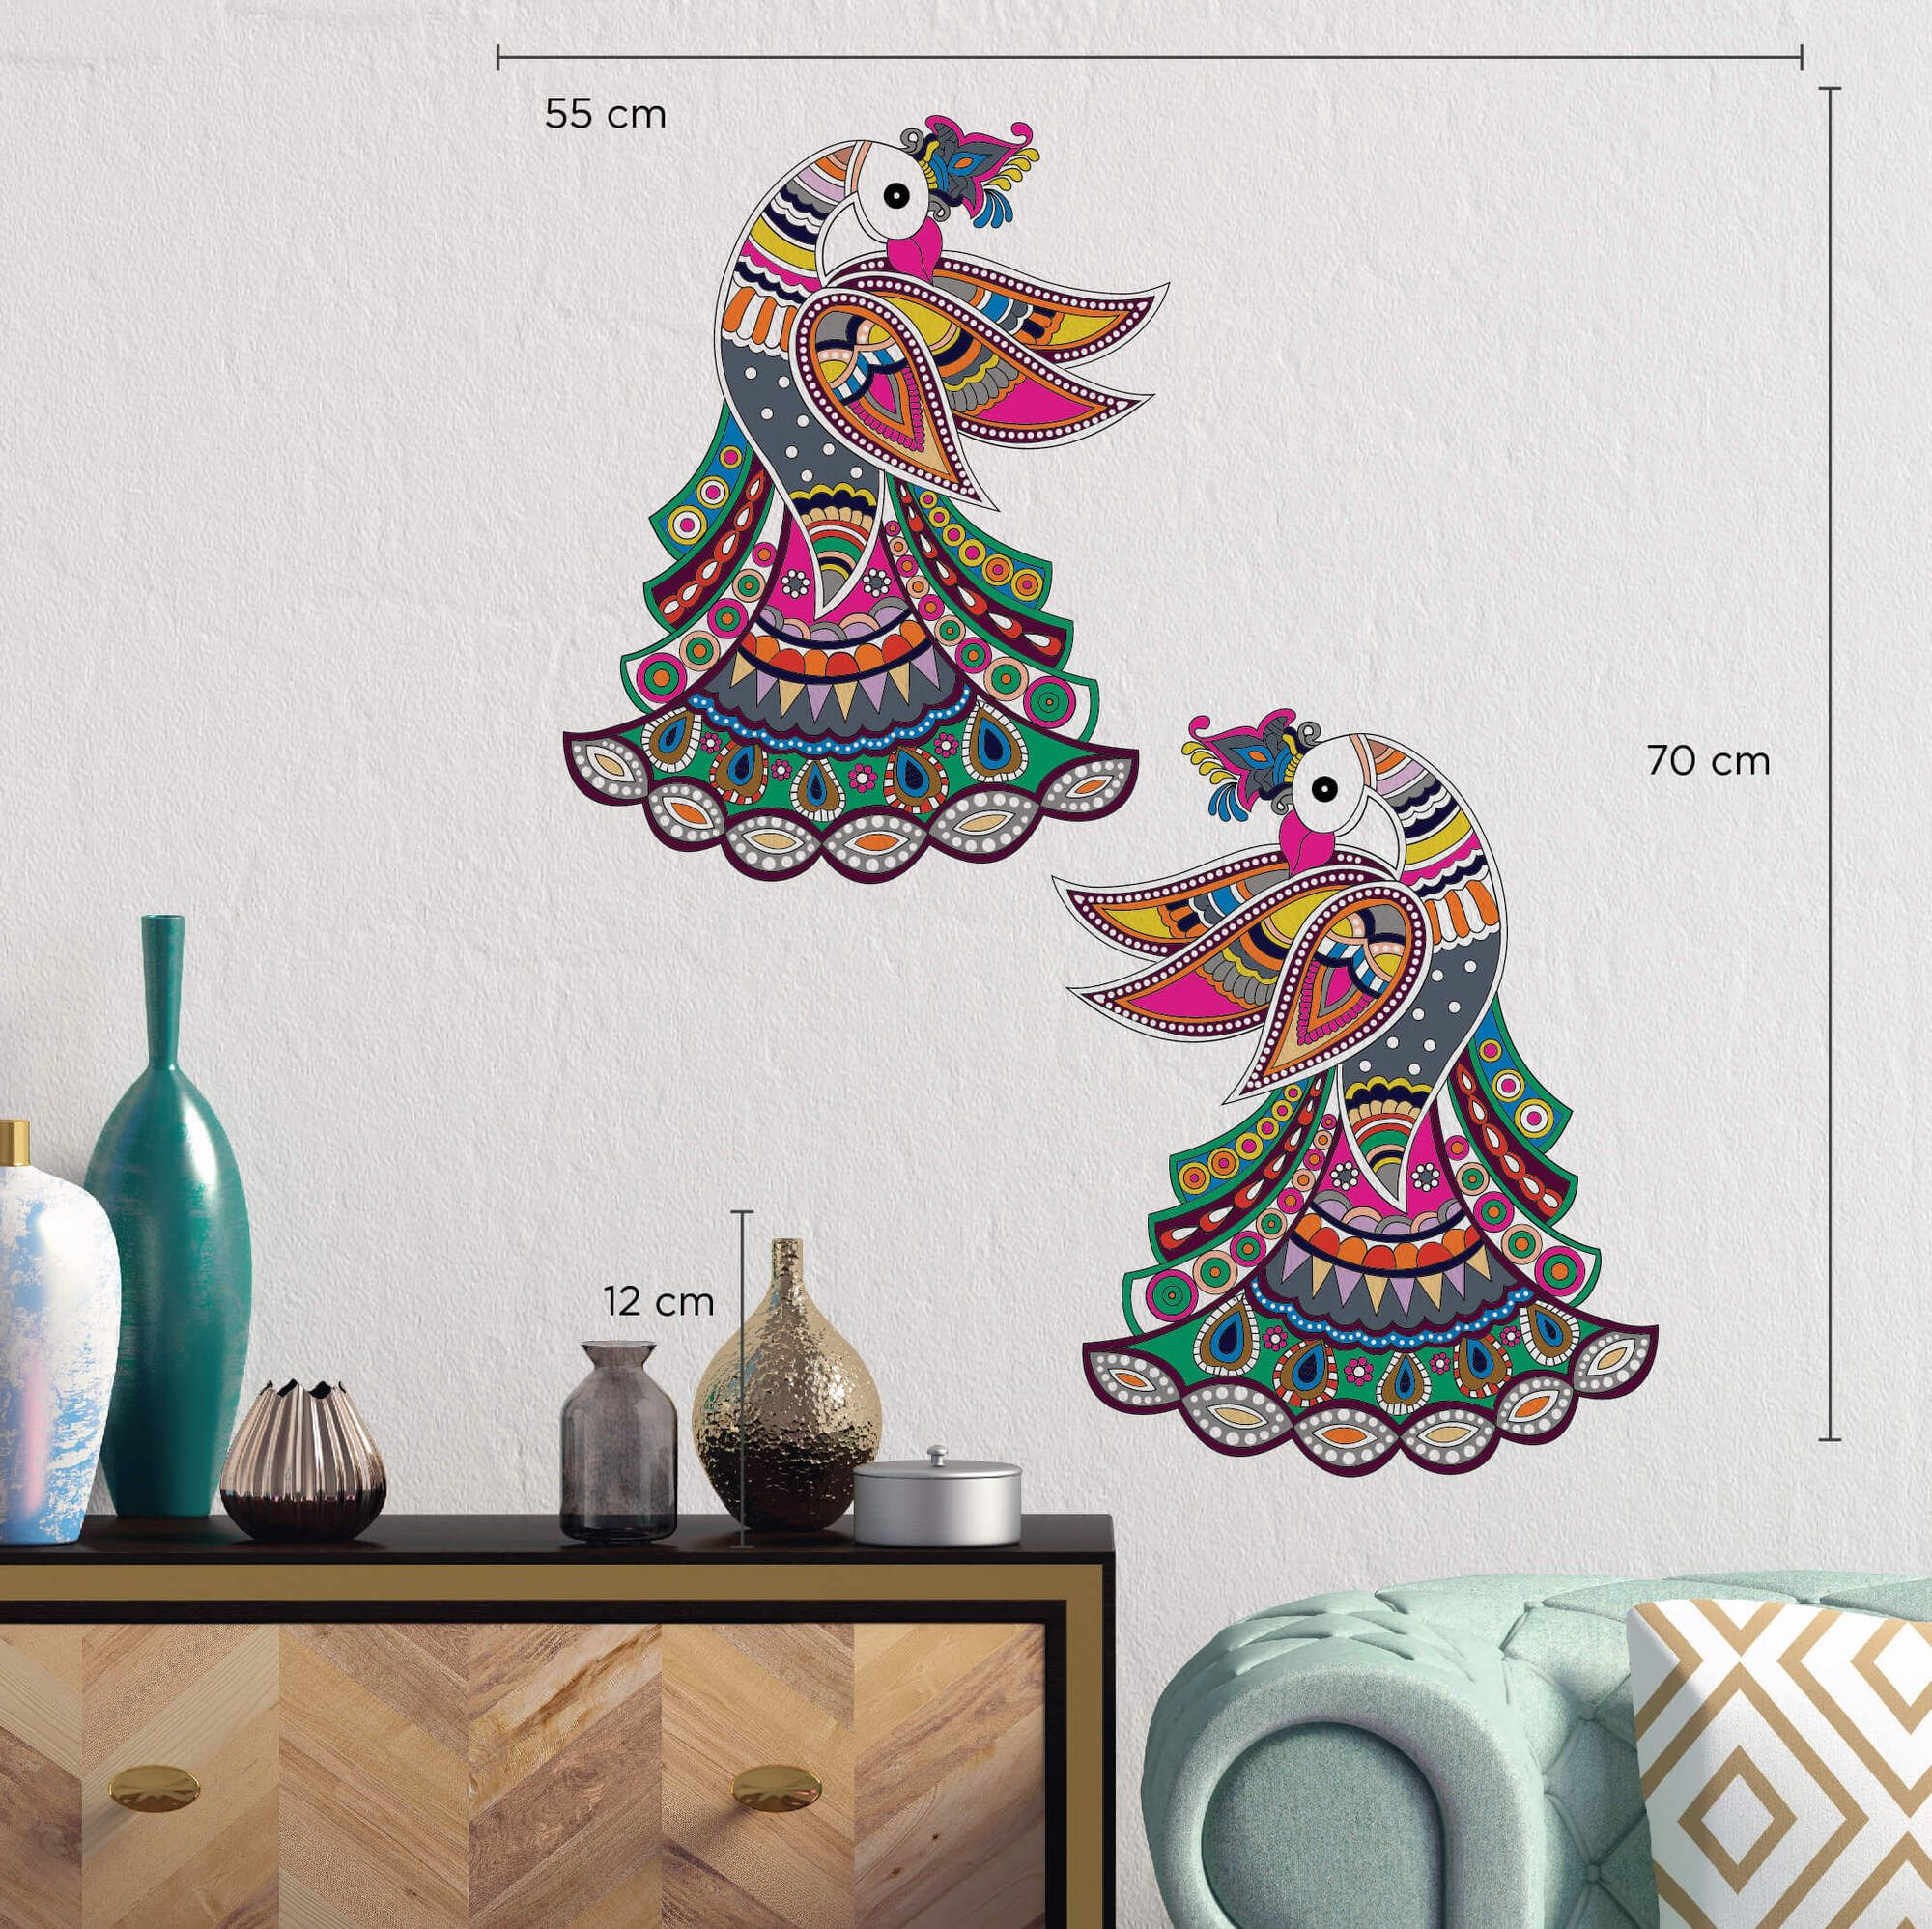 Prancing Peacocks Wall Sticker